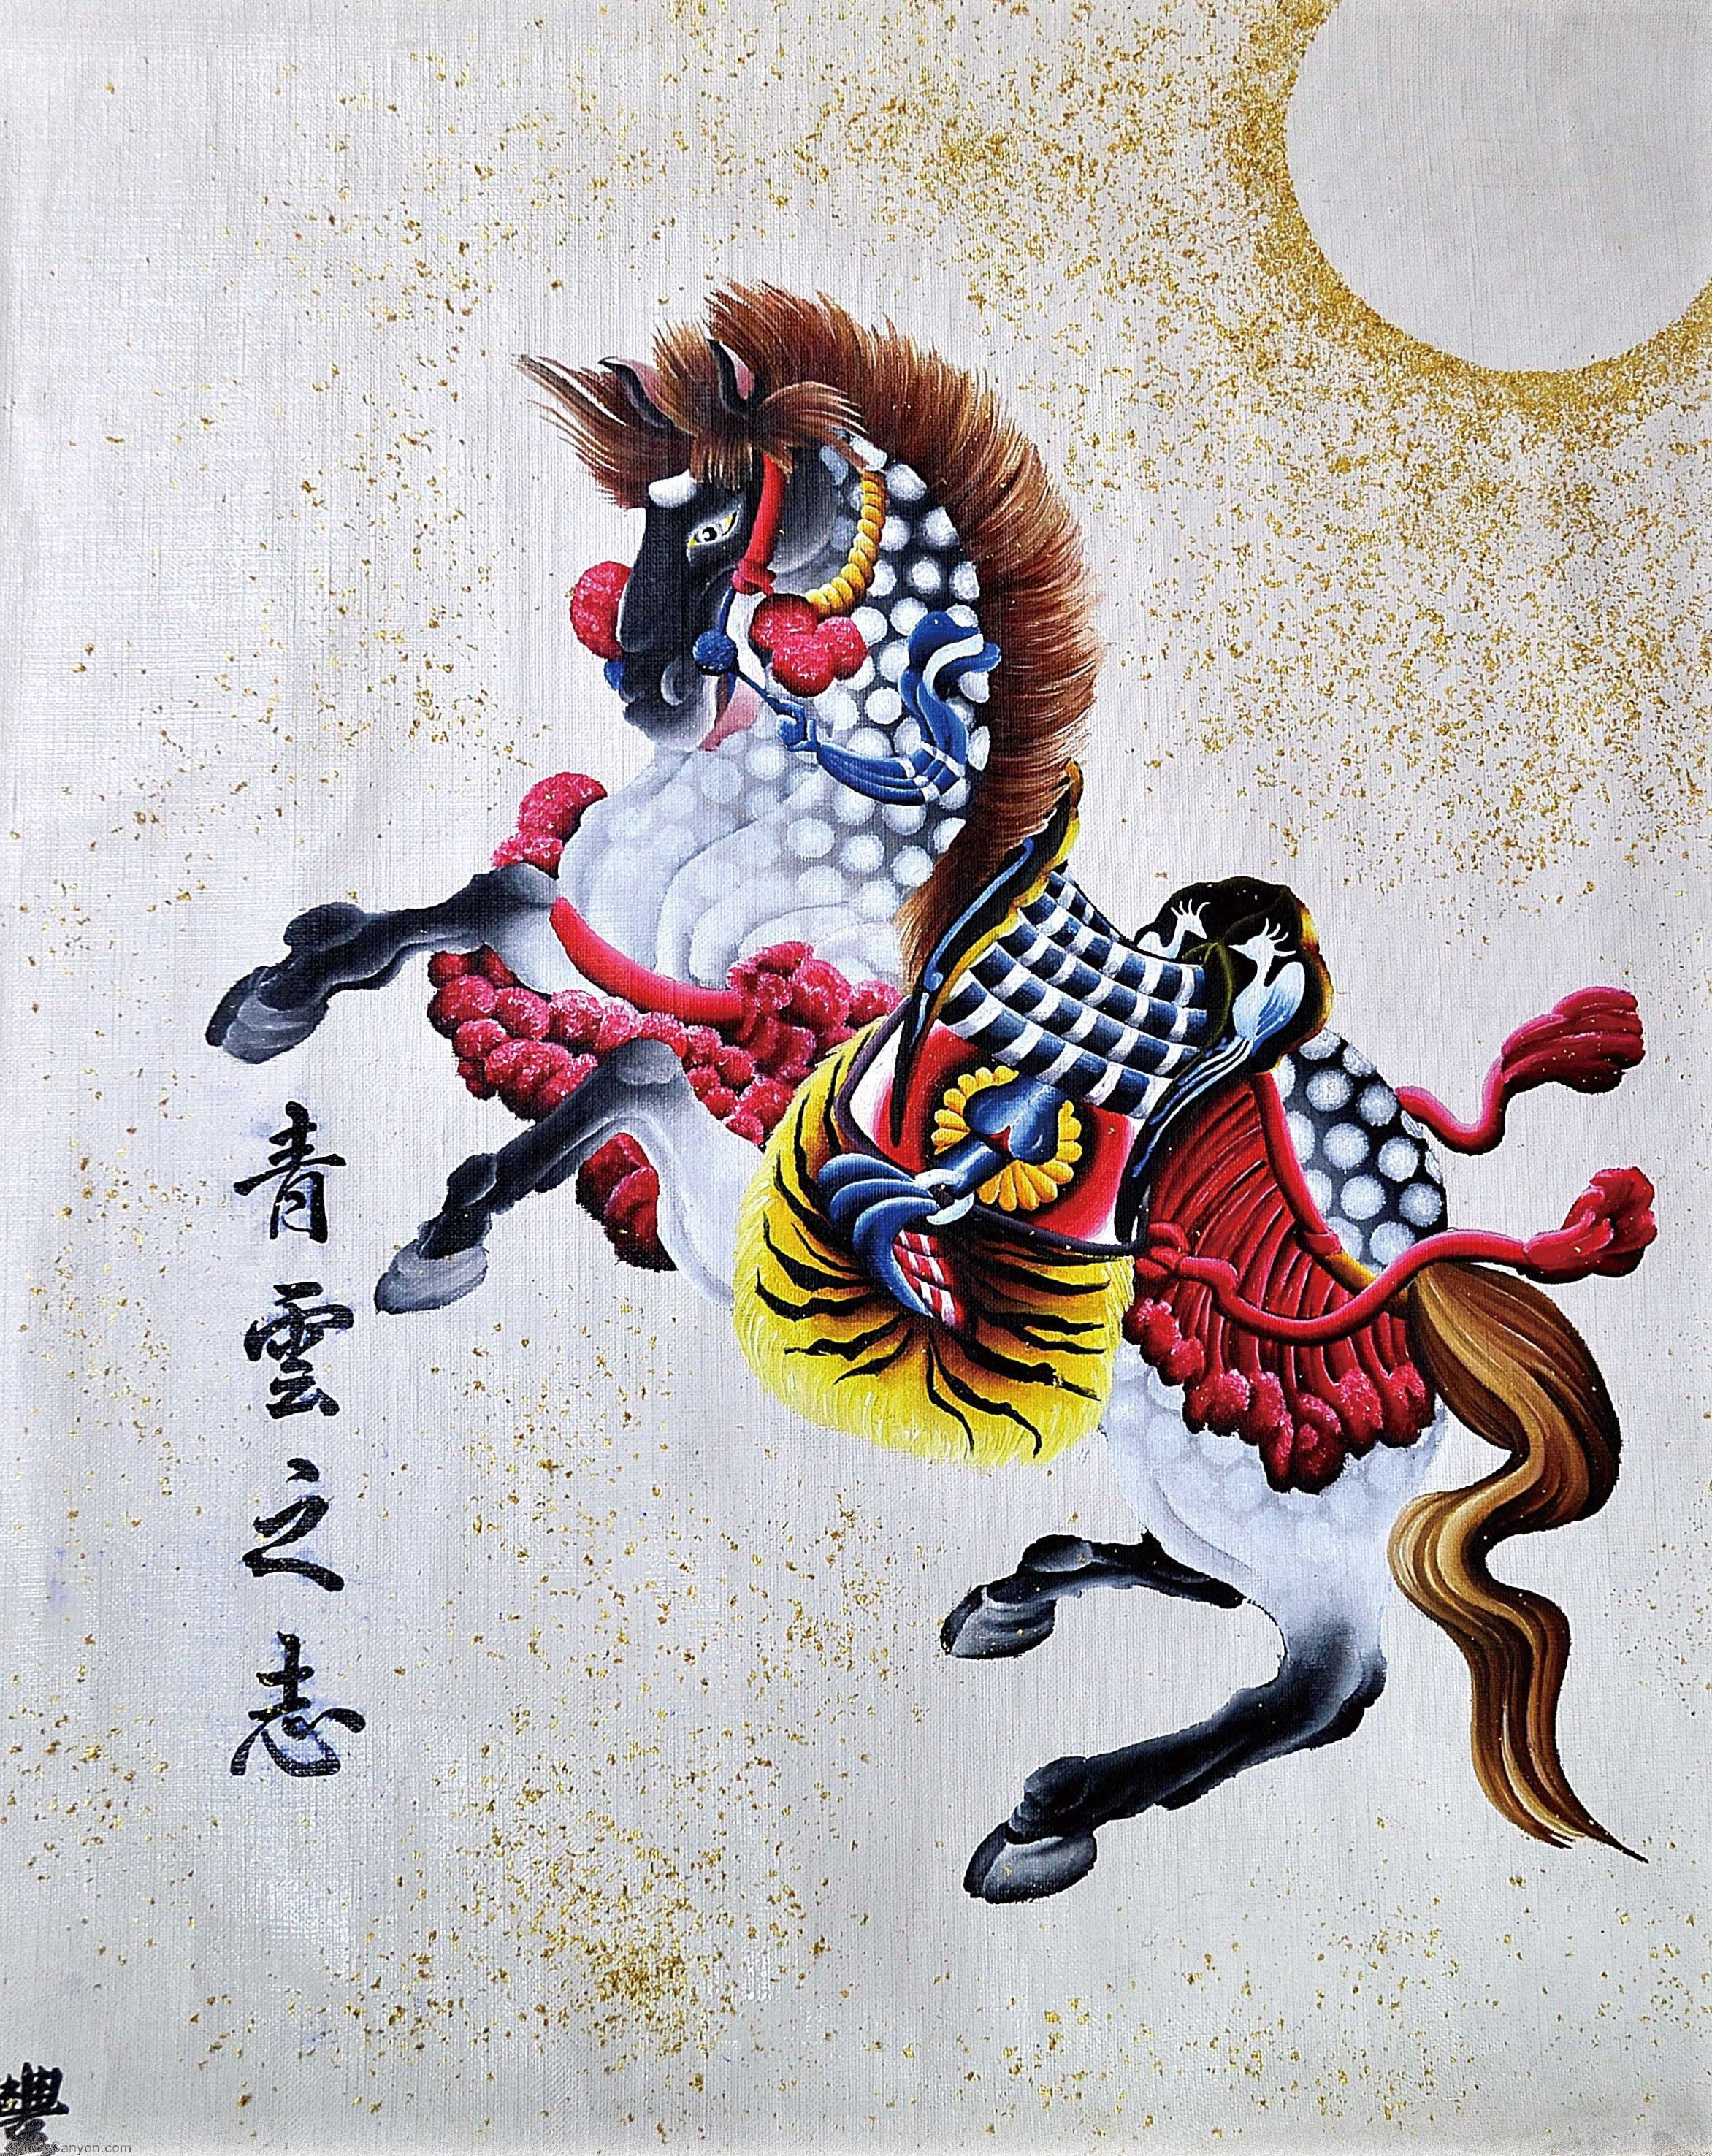 Japanese Horse Horitoyo Traditional Tattoos picture 3847